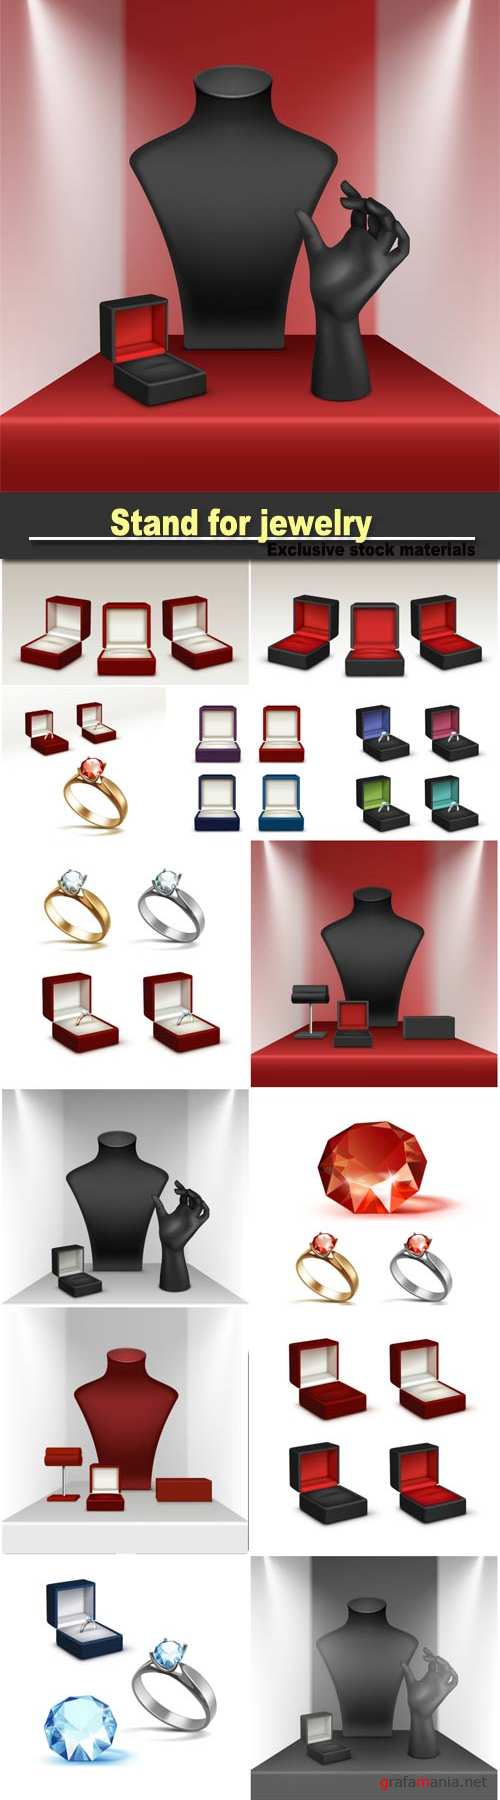 Stand for jewelry with jewellery box close up Isolated in showcase, set of engagement rings, shiny clear diamonds